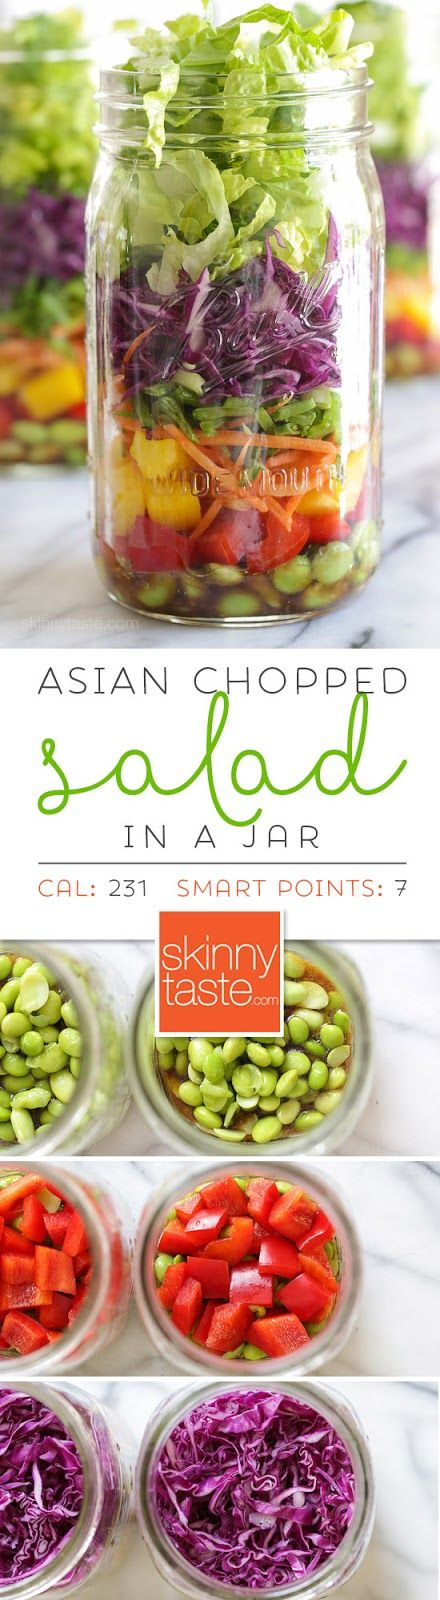 Asian Chopped Salad with Sesame Soy Vinaigrette (In a Jar)